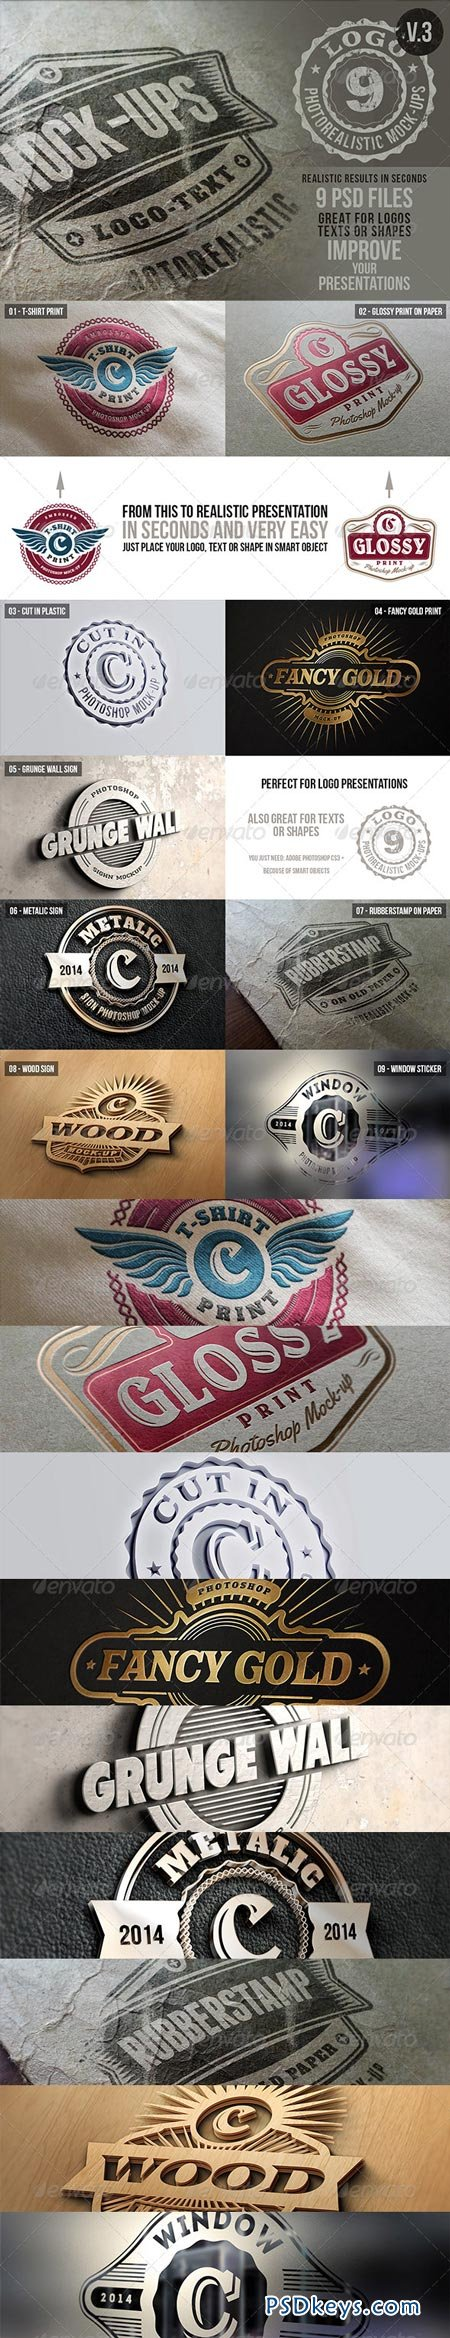 Photorealistic Logo Mock-Ups Vol.3 6367196